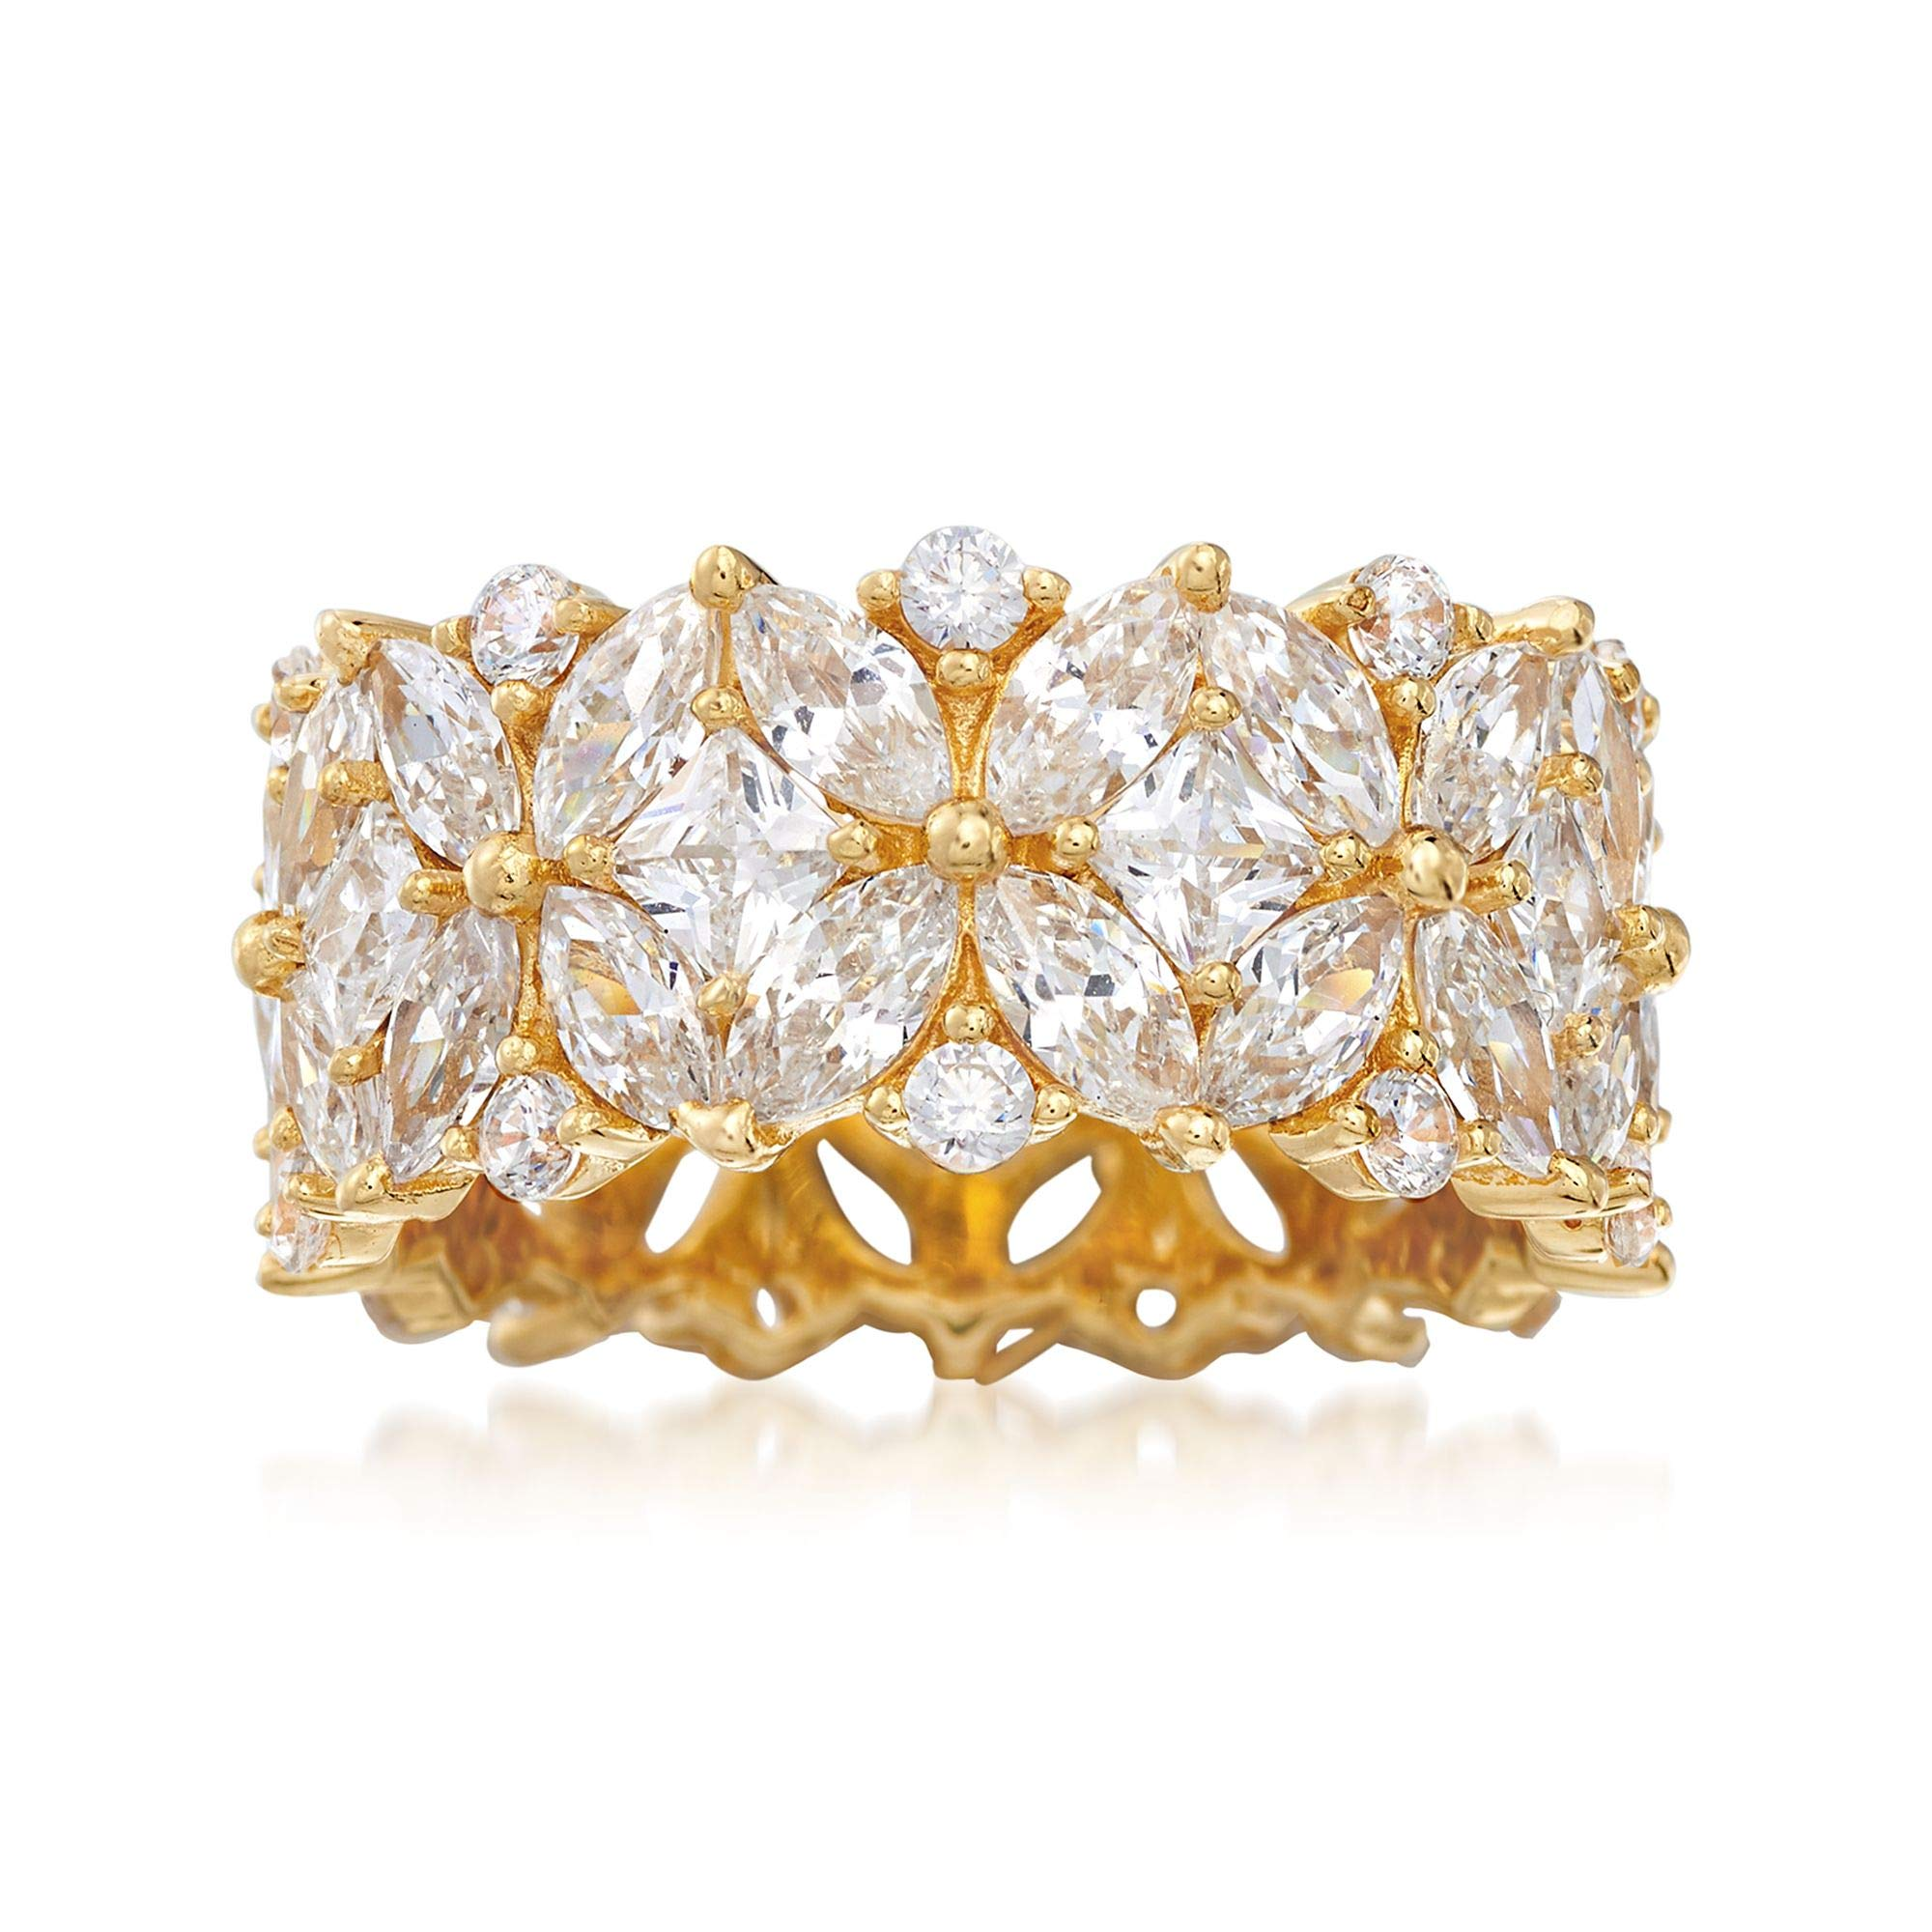 Ross-Simons 7.30 ct. t.w. Multi-Cut CZ Floral Eternity Band in 18kt Gold Over Sterling